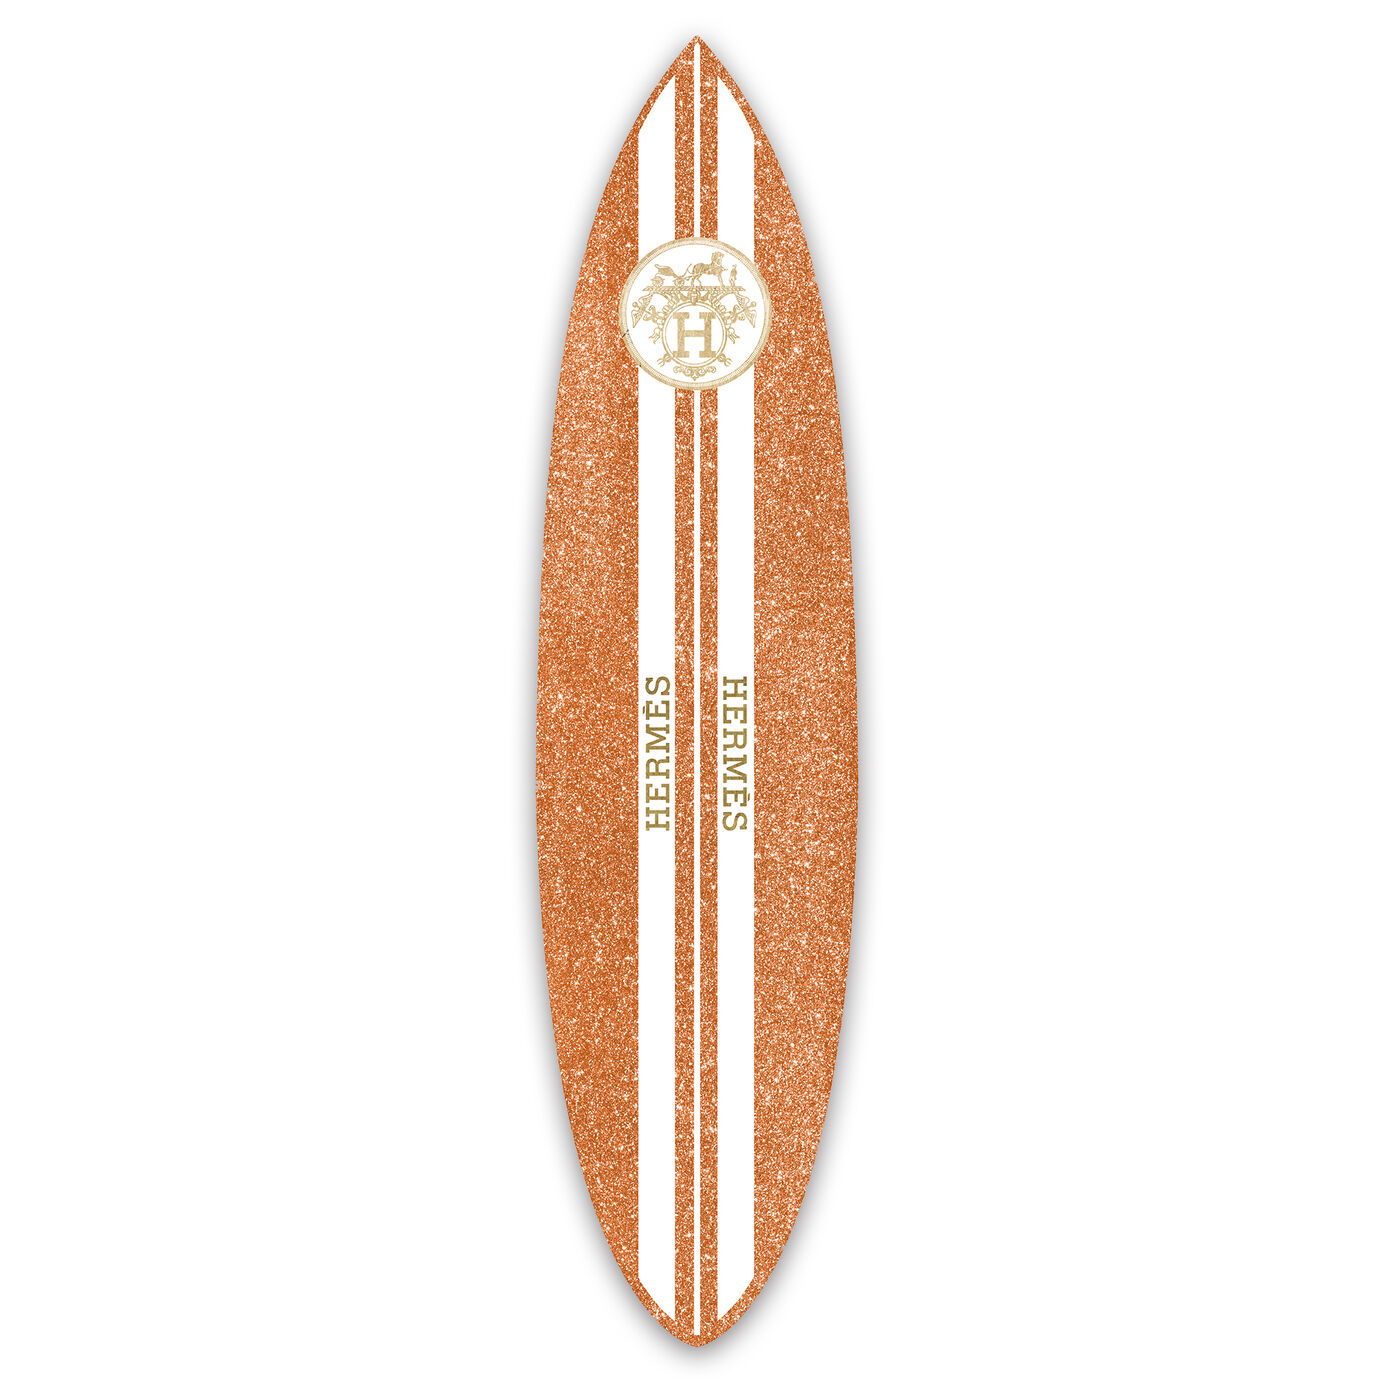 French Surfboard I